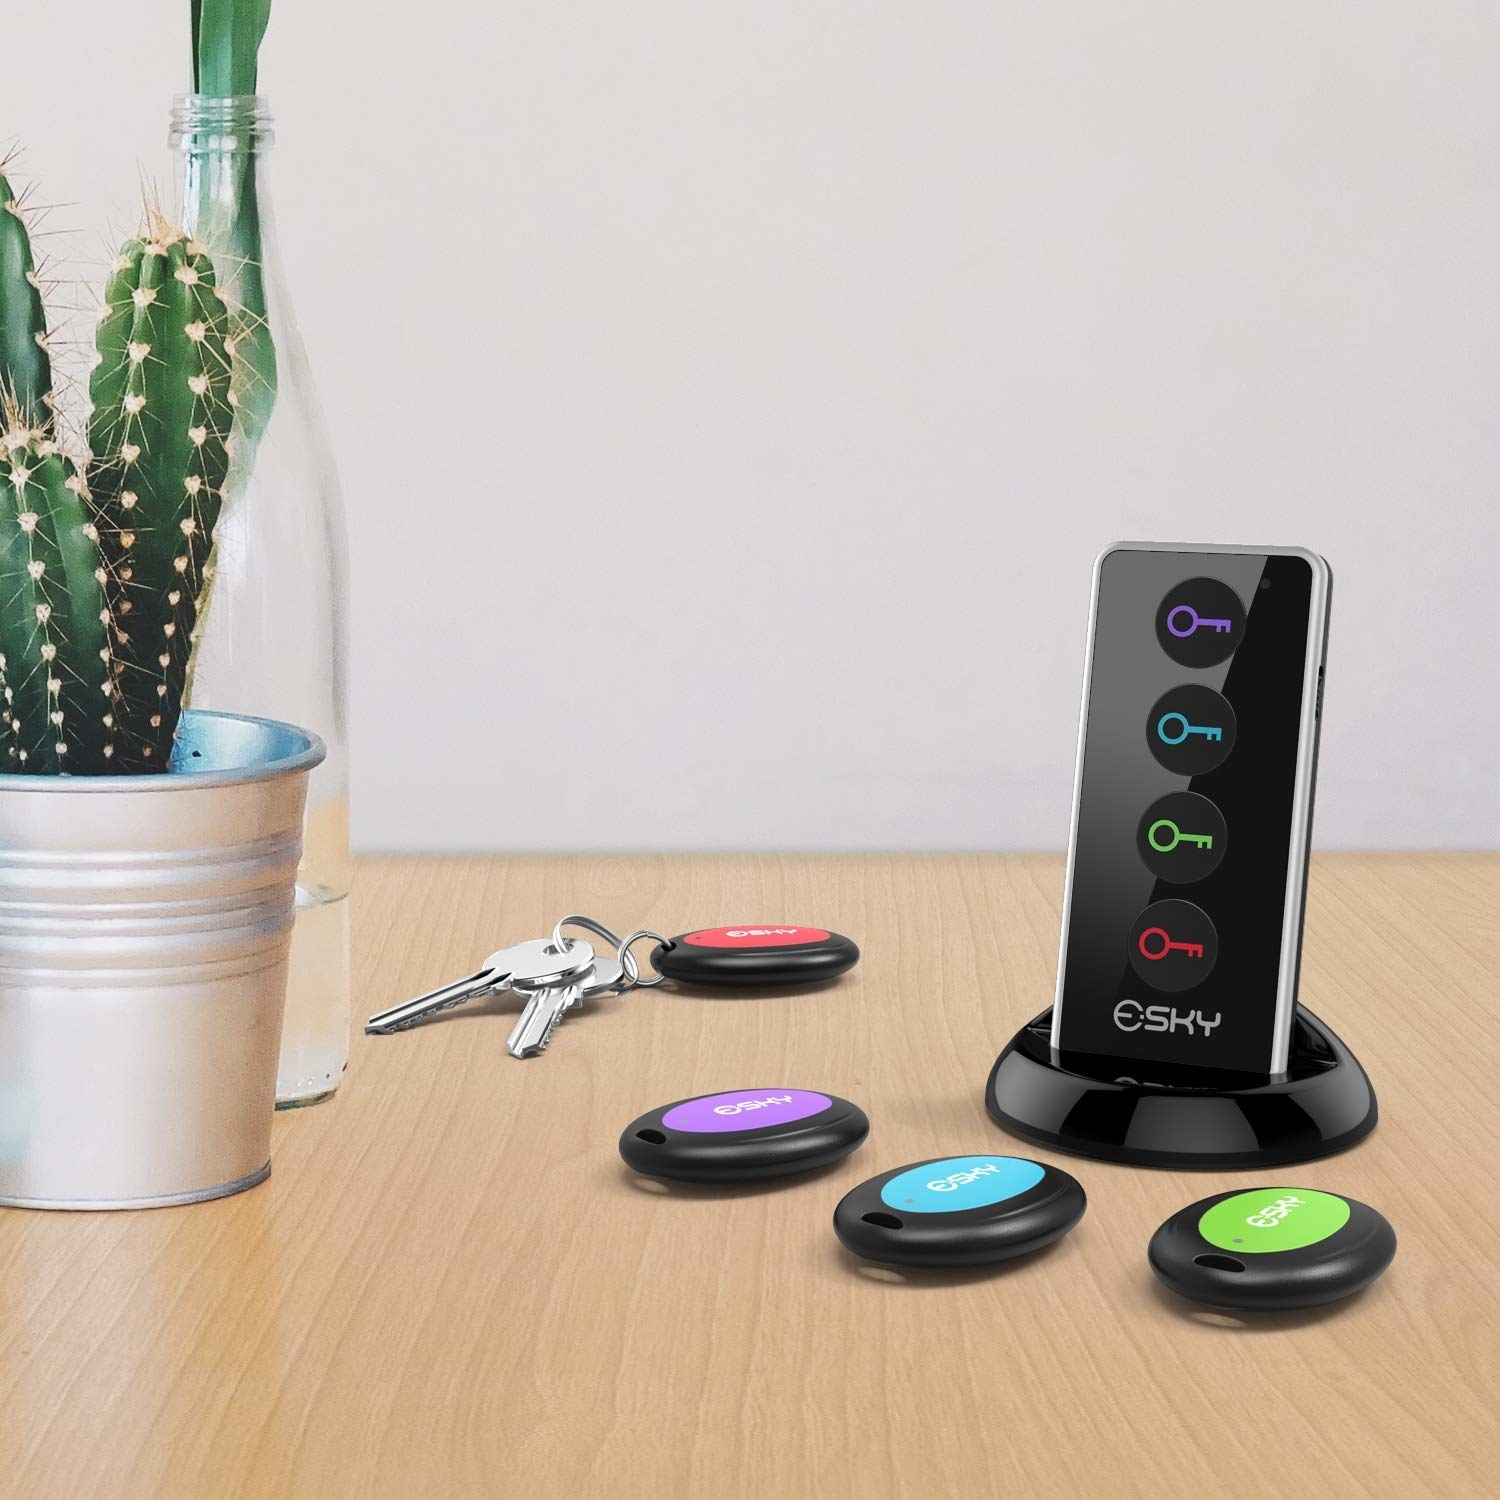 the black small remote-shaped device with buttons with different colored keys on it and small round devices with matching colors sitting below it